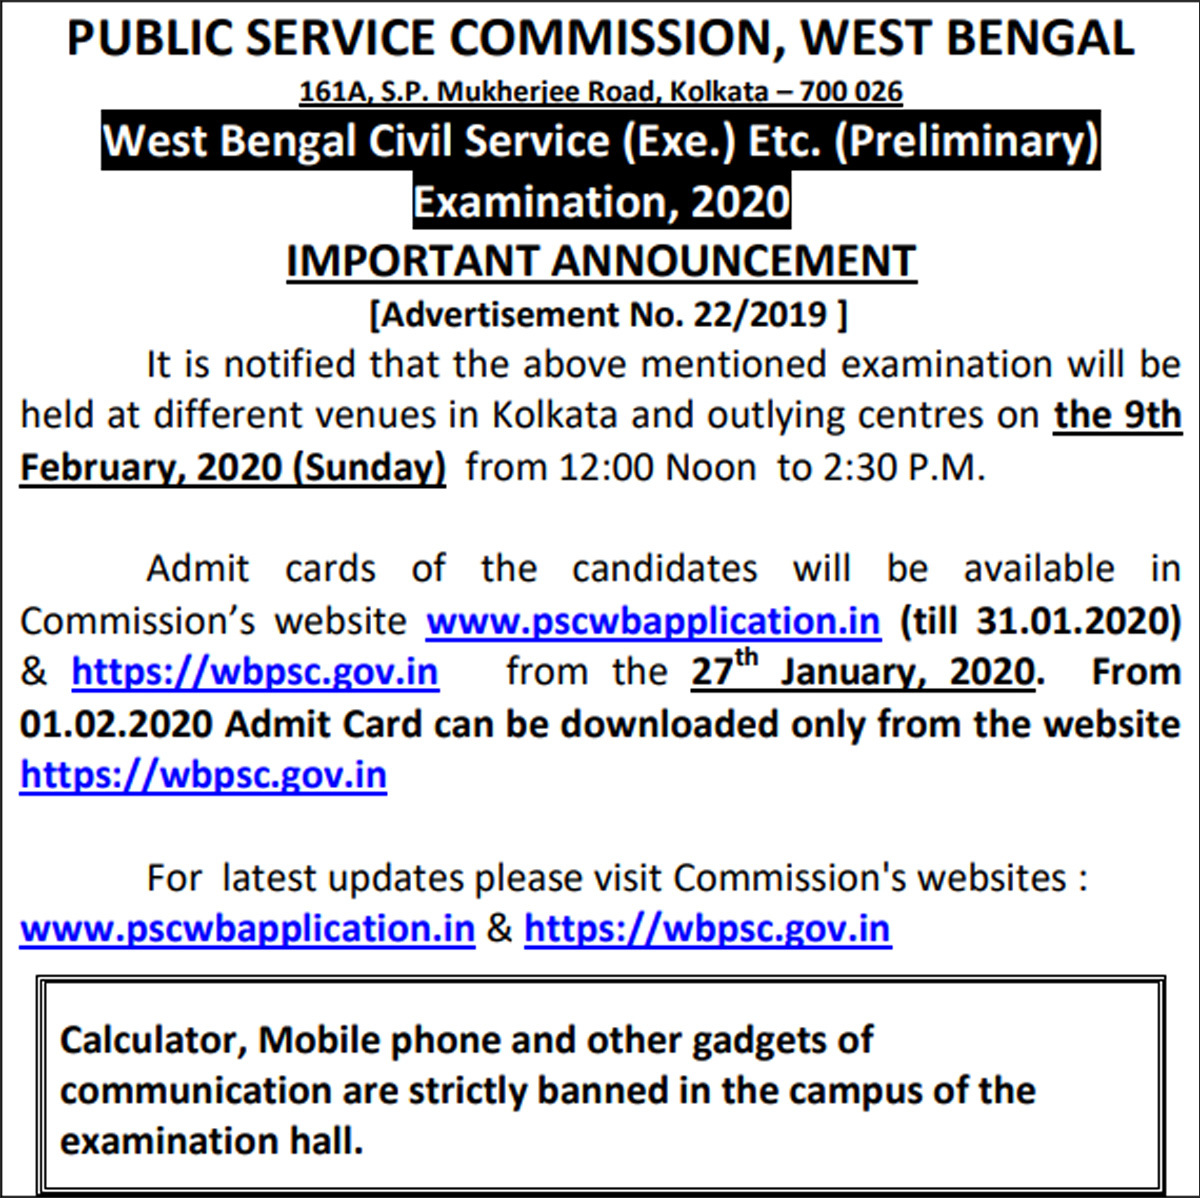 WBPSC Civil Service pre exam on Feb 9